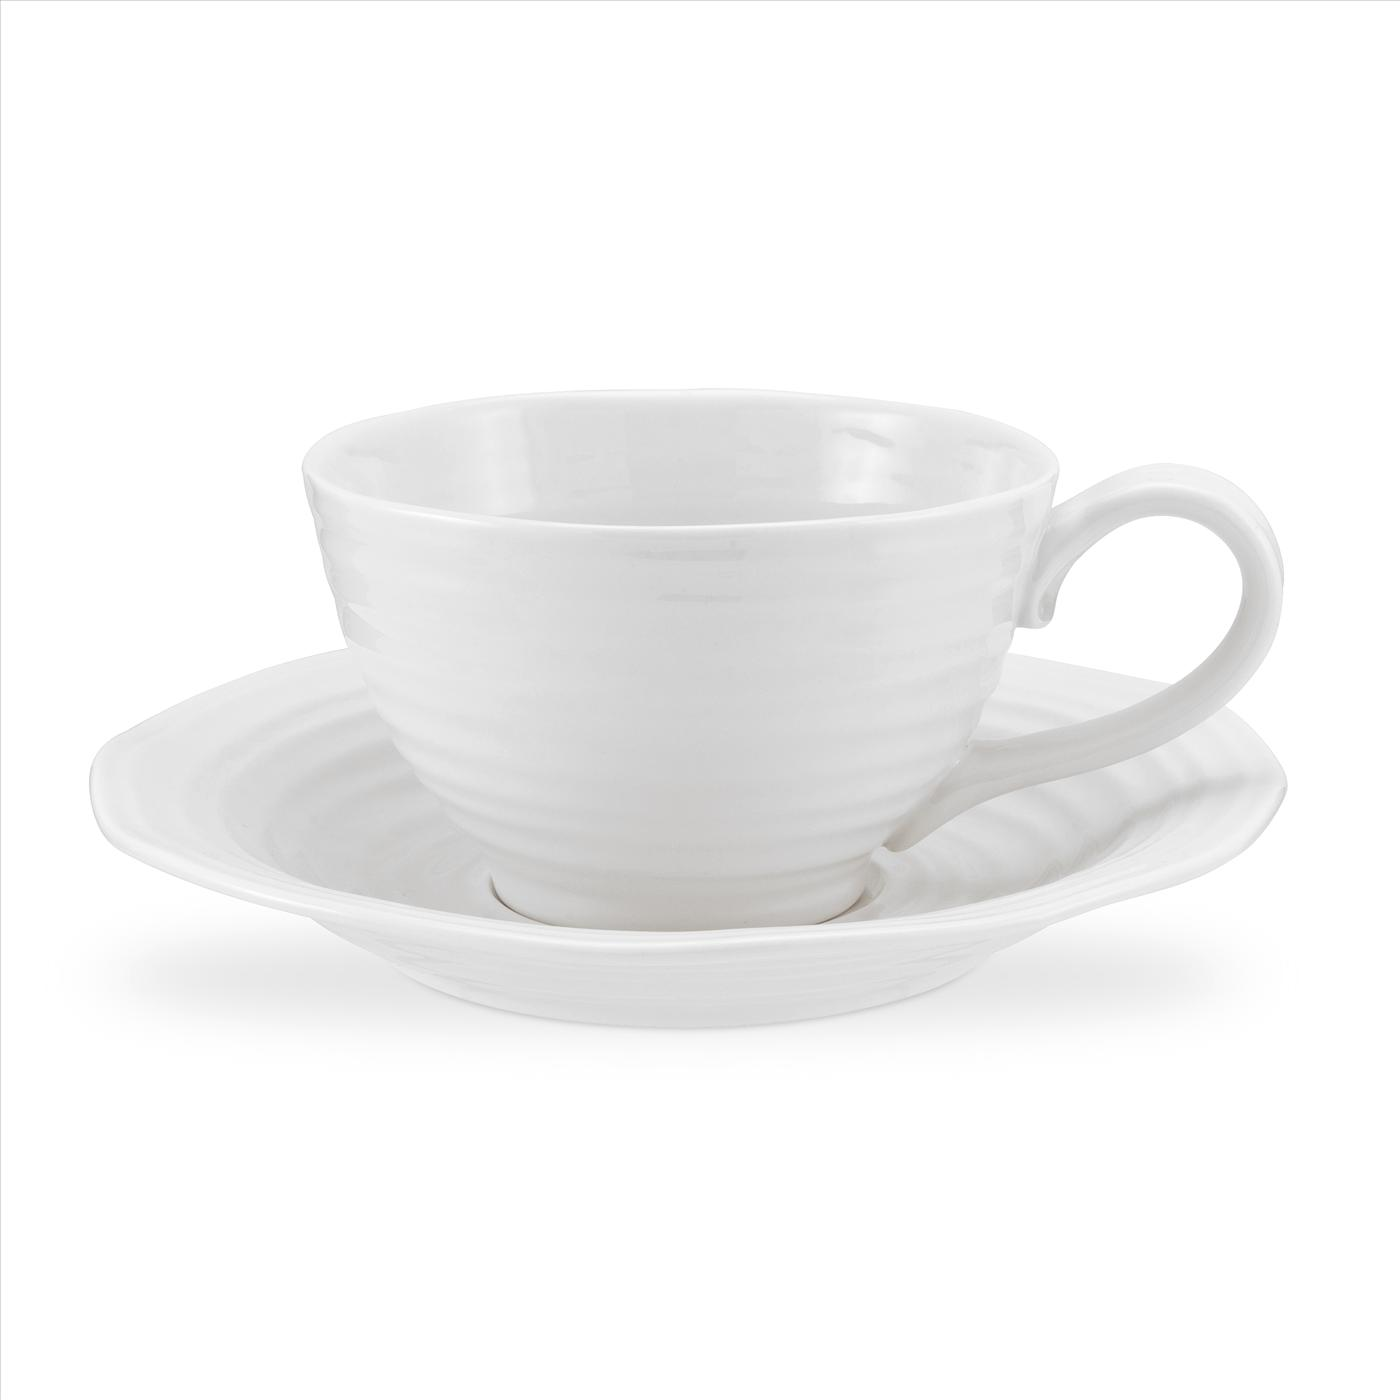 Portmeirion Sophie Conran White Jumbo Cup and Saucer image number 0